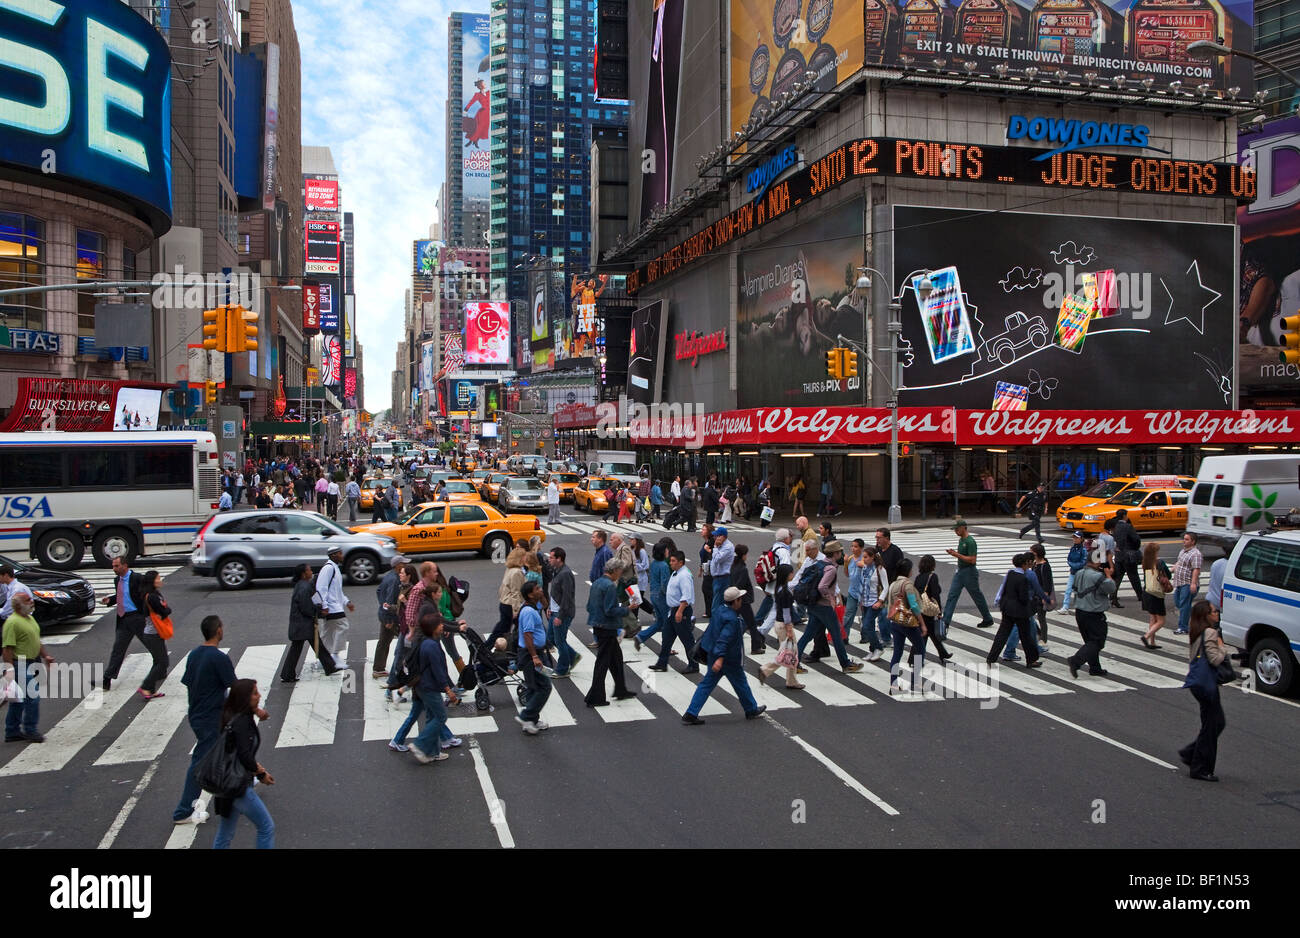 Streets in New York - Stock Image